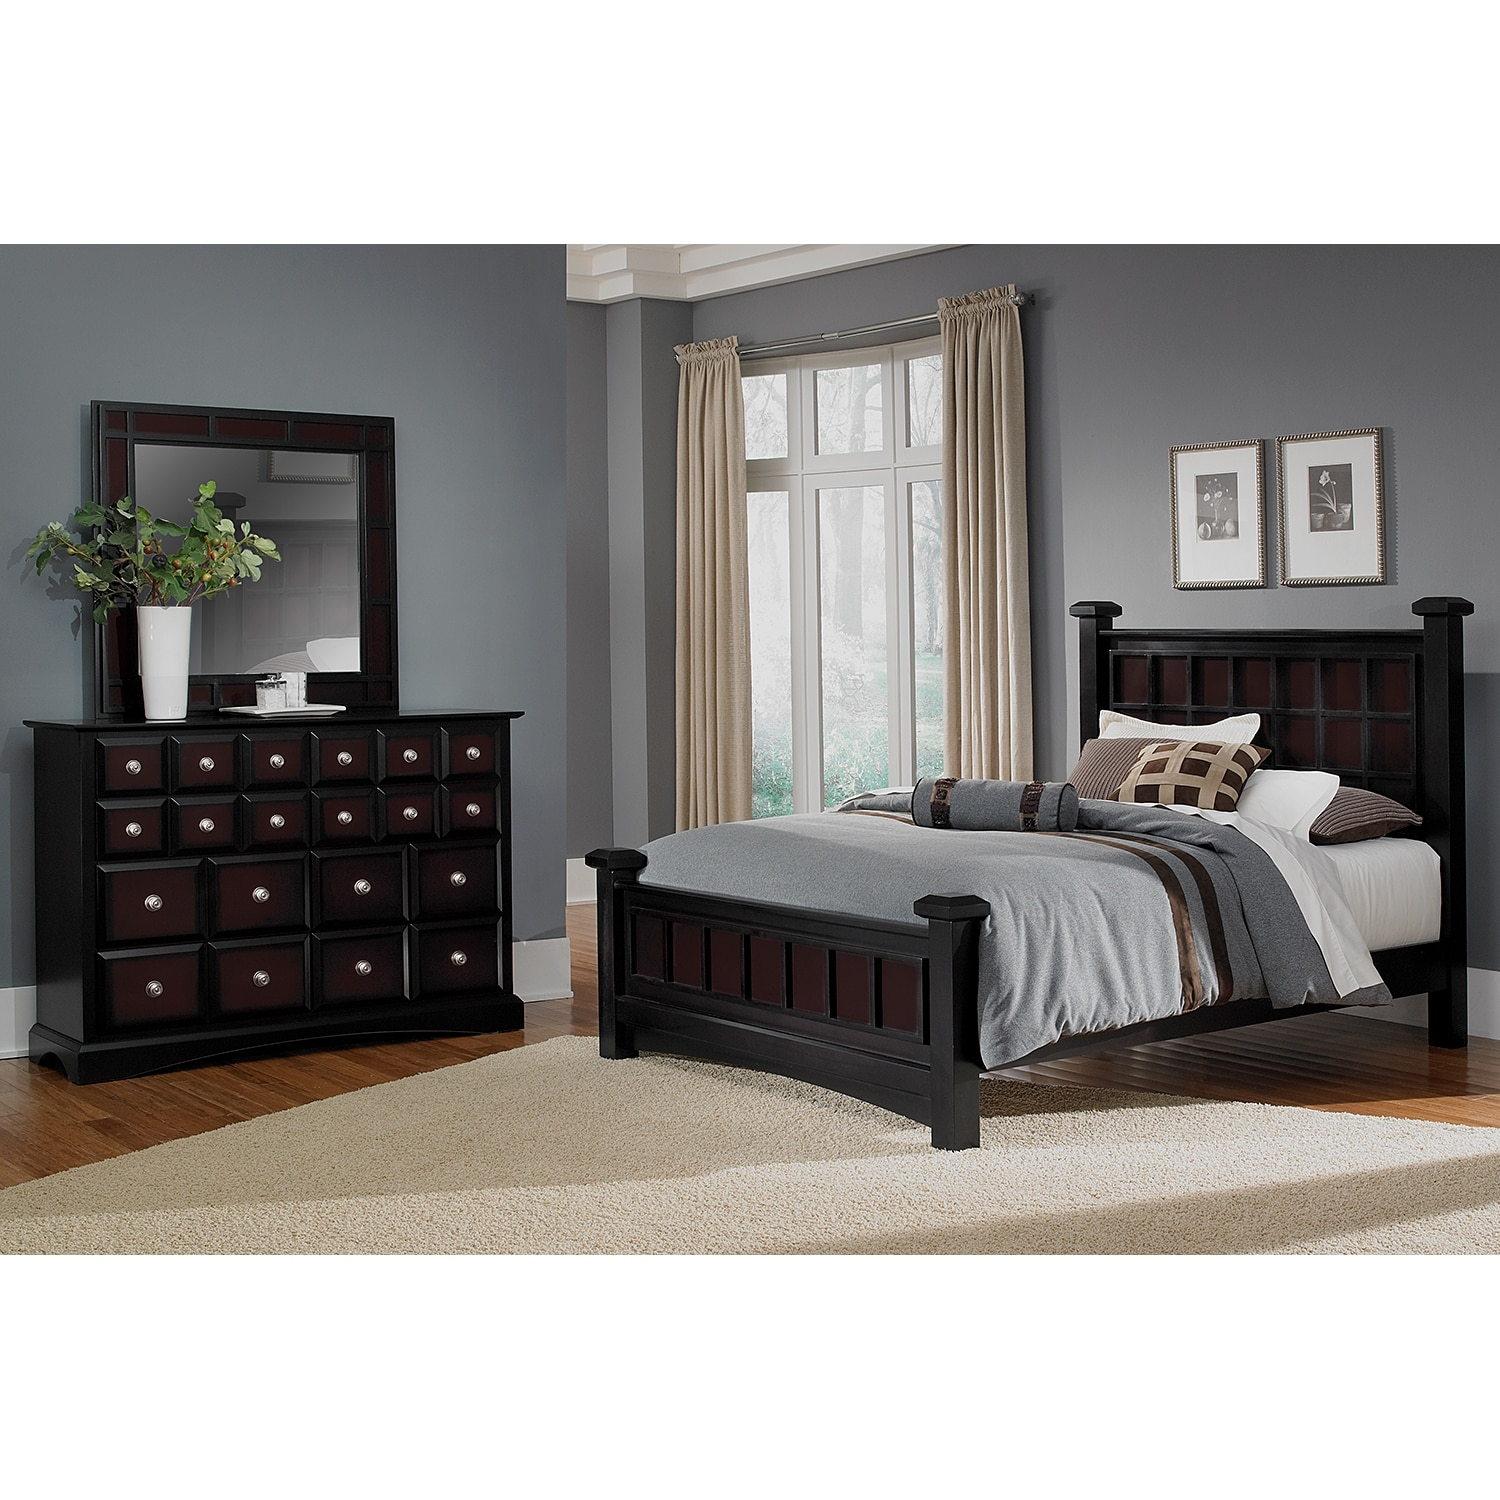 Winchester 5-Piece Queen Bedroom Set - Black and Burnished Merlot